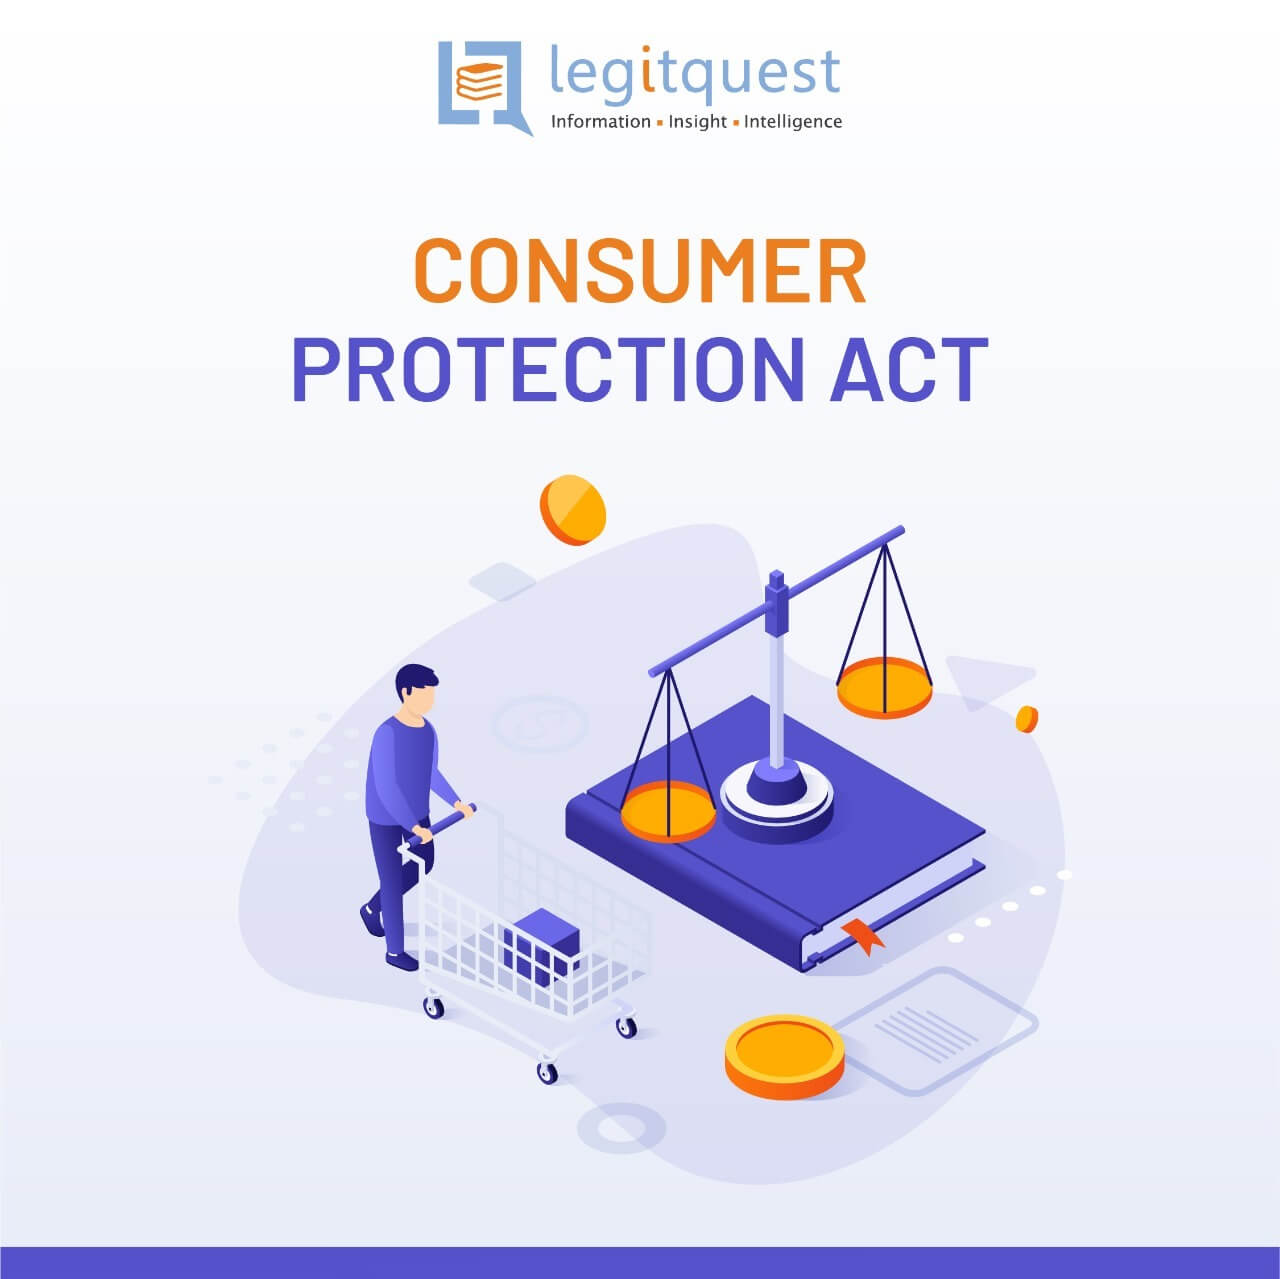 consumer-protection-act.jpeg